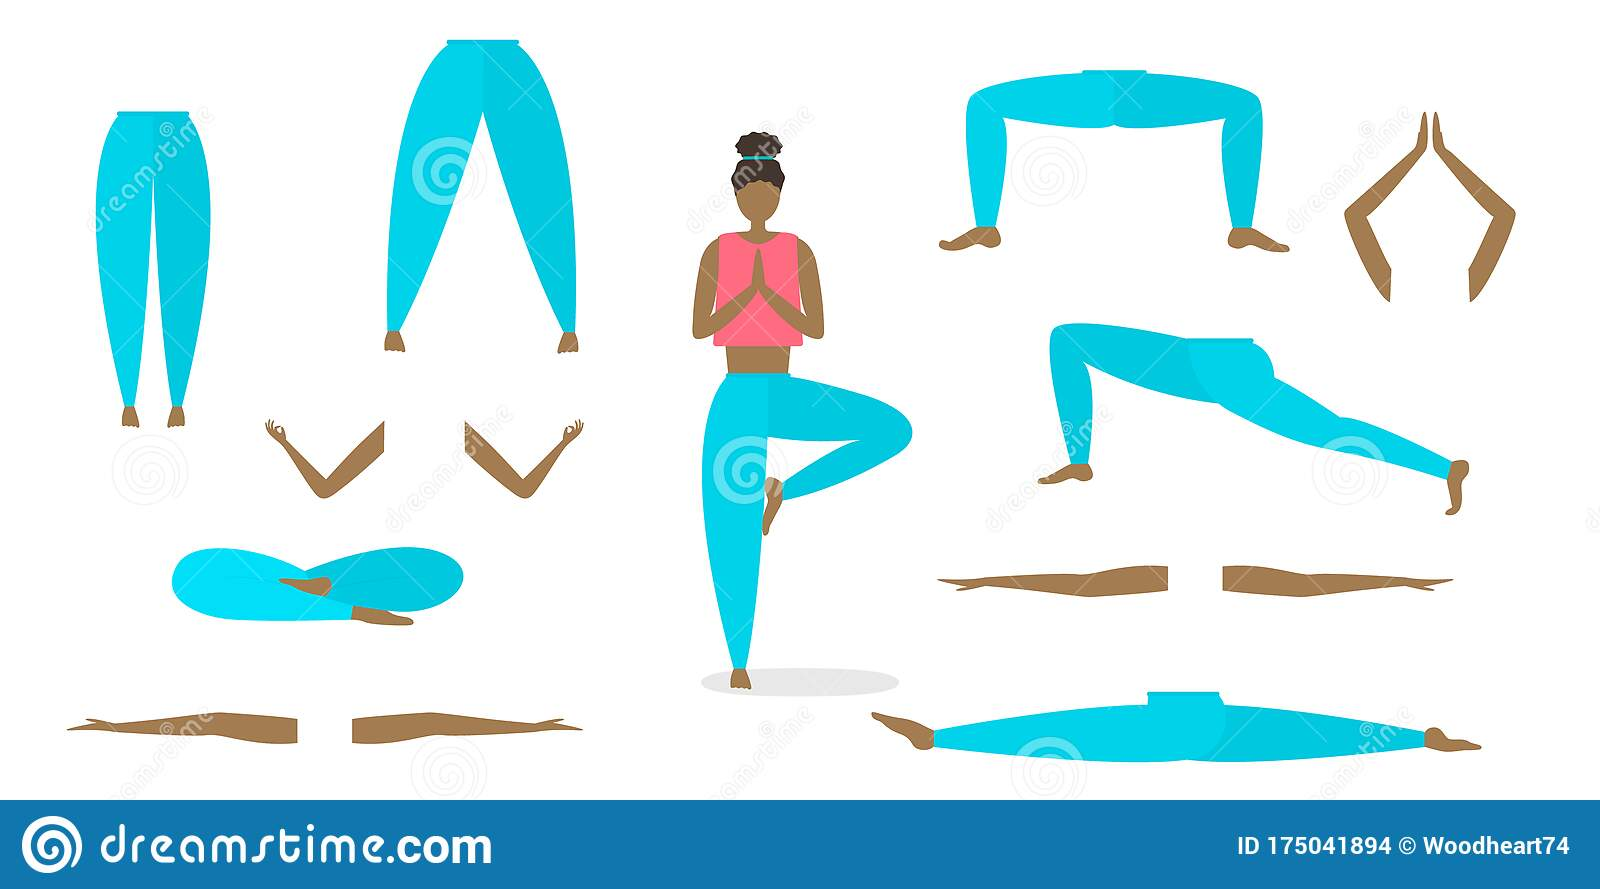 Vector Yoga Poses Constructor. All Elements Of The Body Are